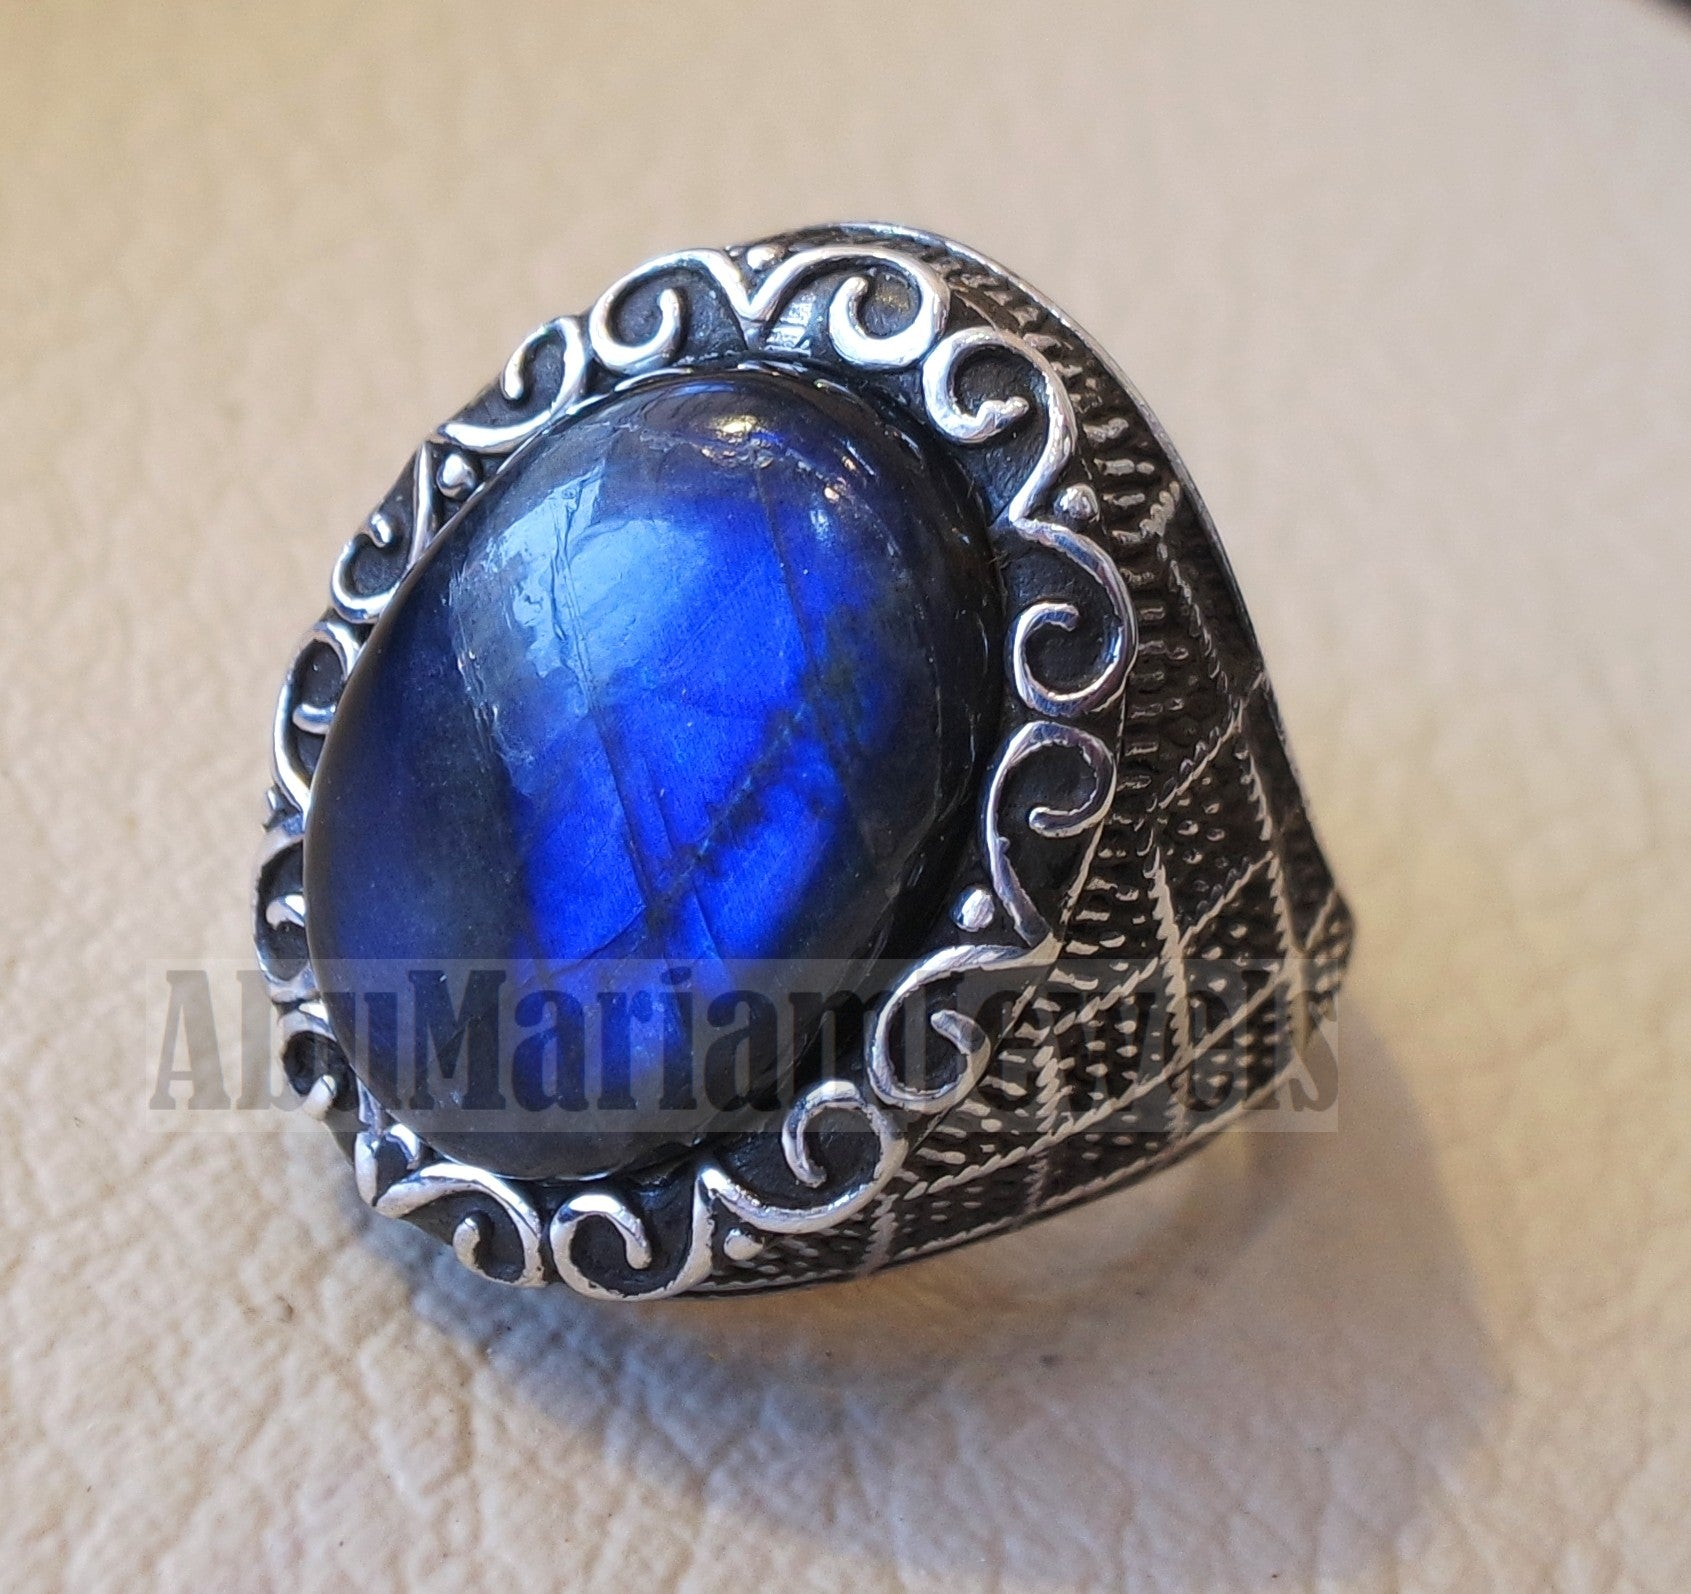 flashy blue labradorite Top quality men ring sterling silver 925 natural stone all sizes jewelry fast shipping ottoman middle eastern style